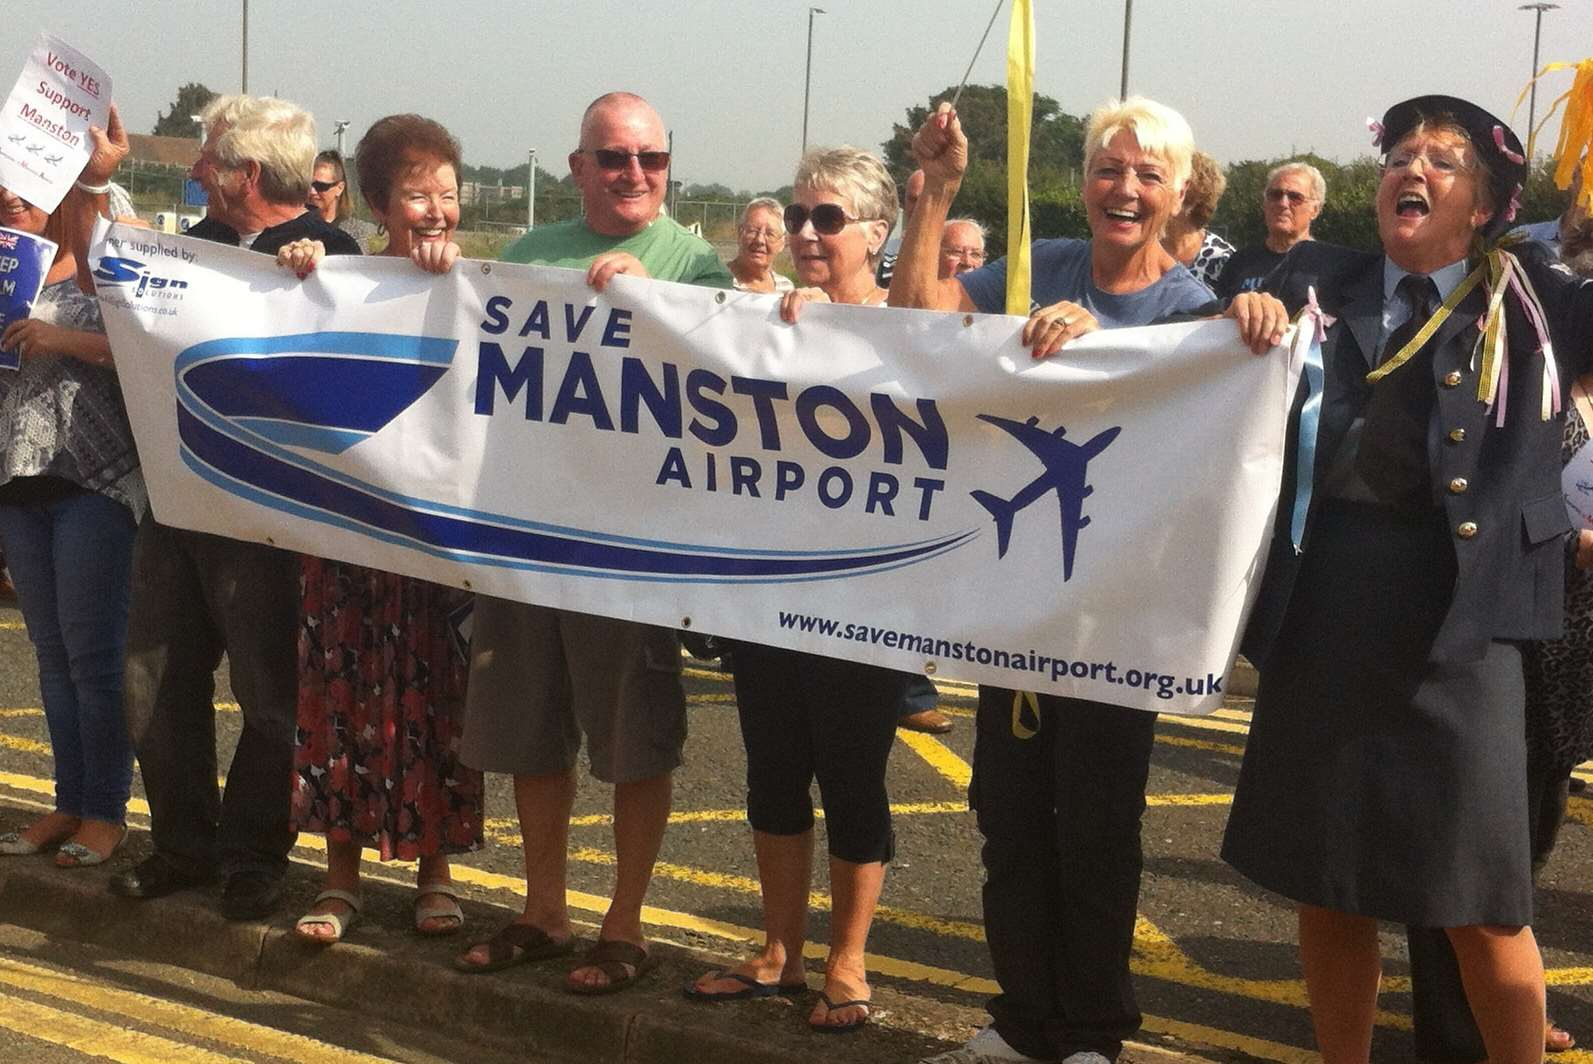 Save Manston Airport supporters during a previous rally